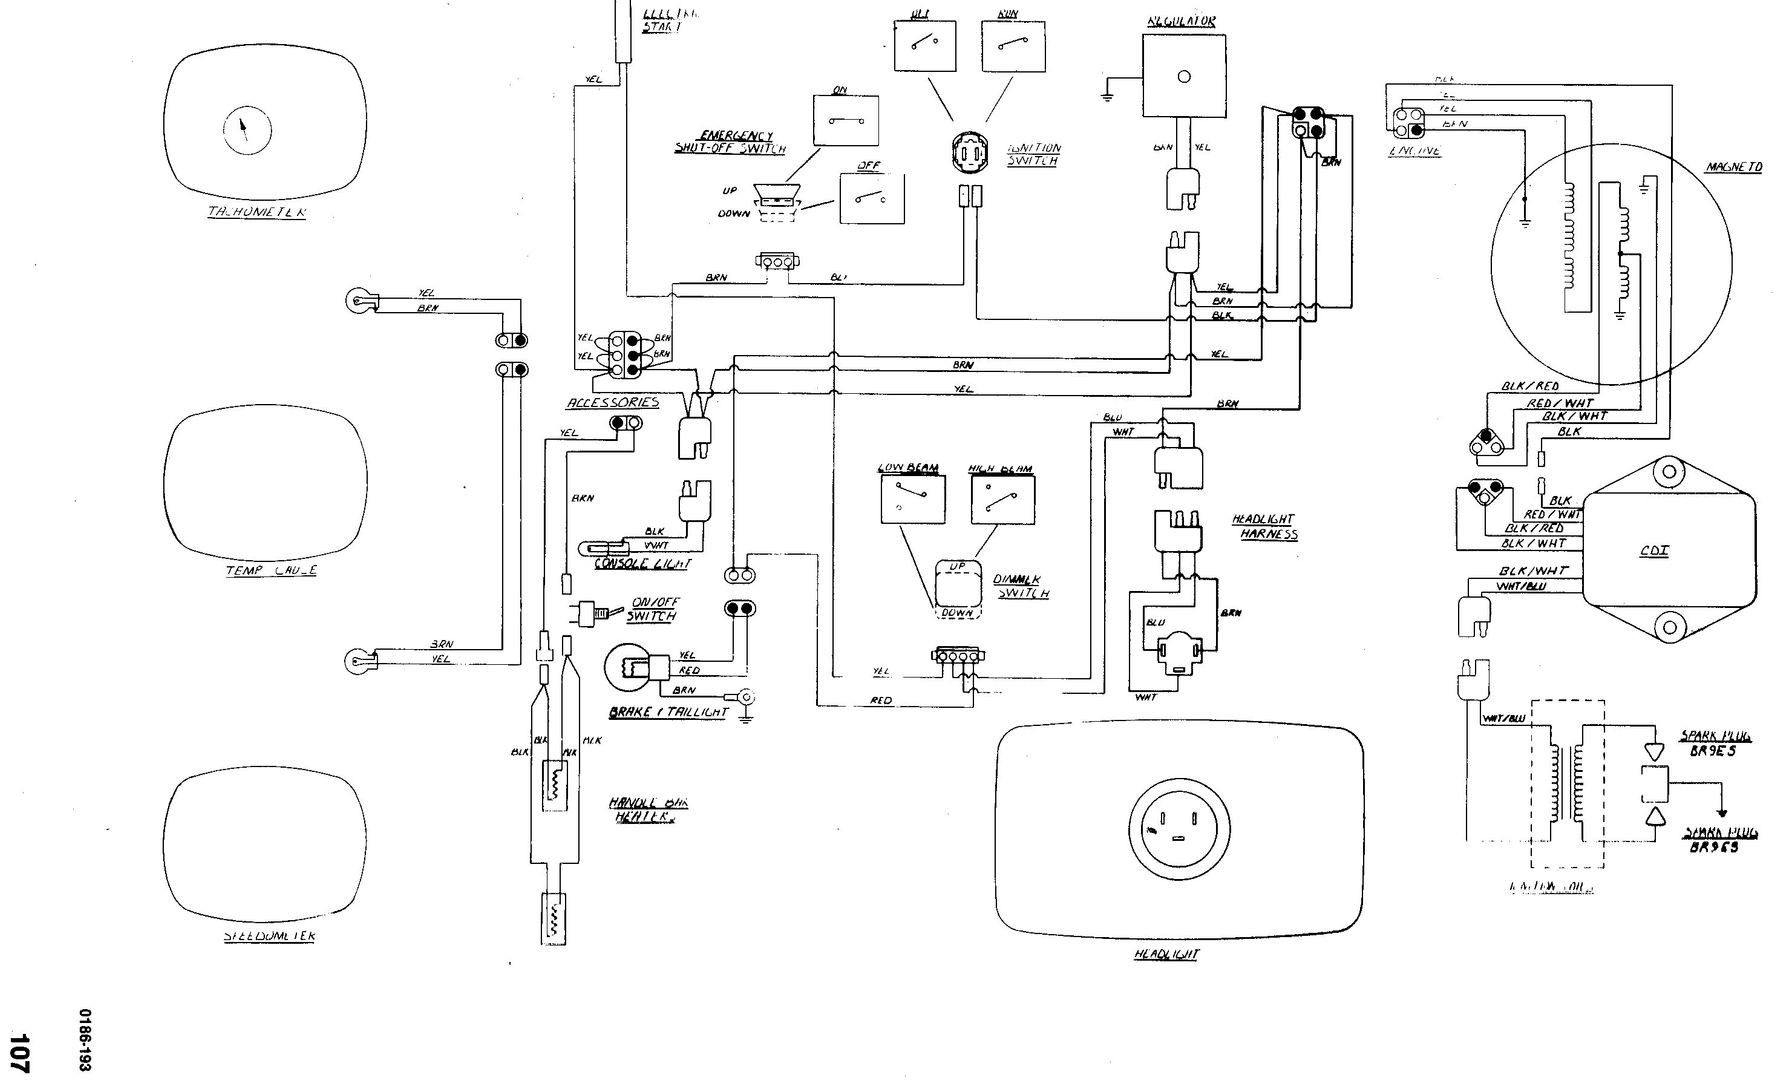 New Wiring Diagram for Silvertone Guitar (With images